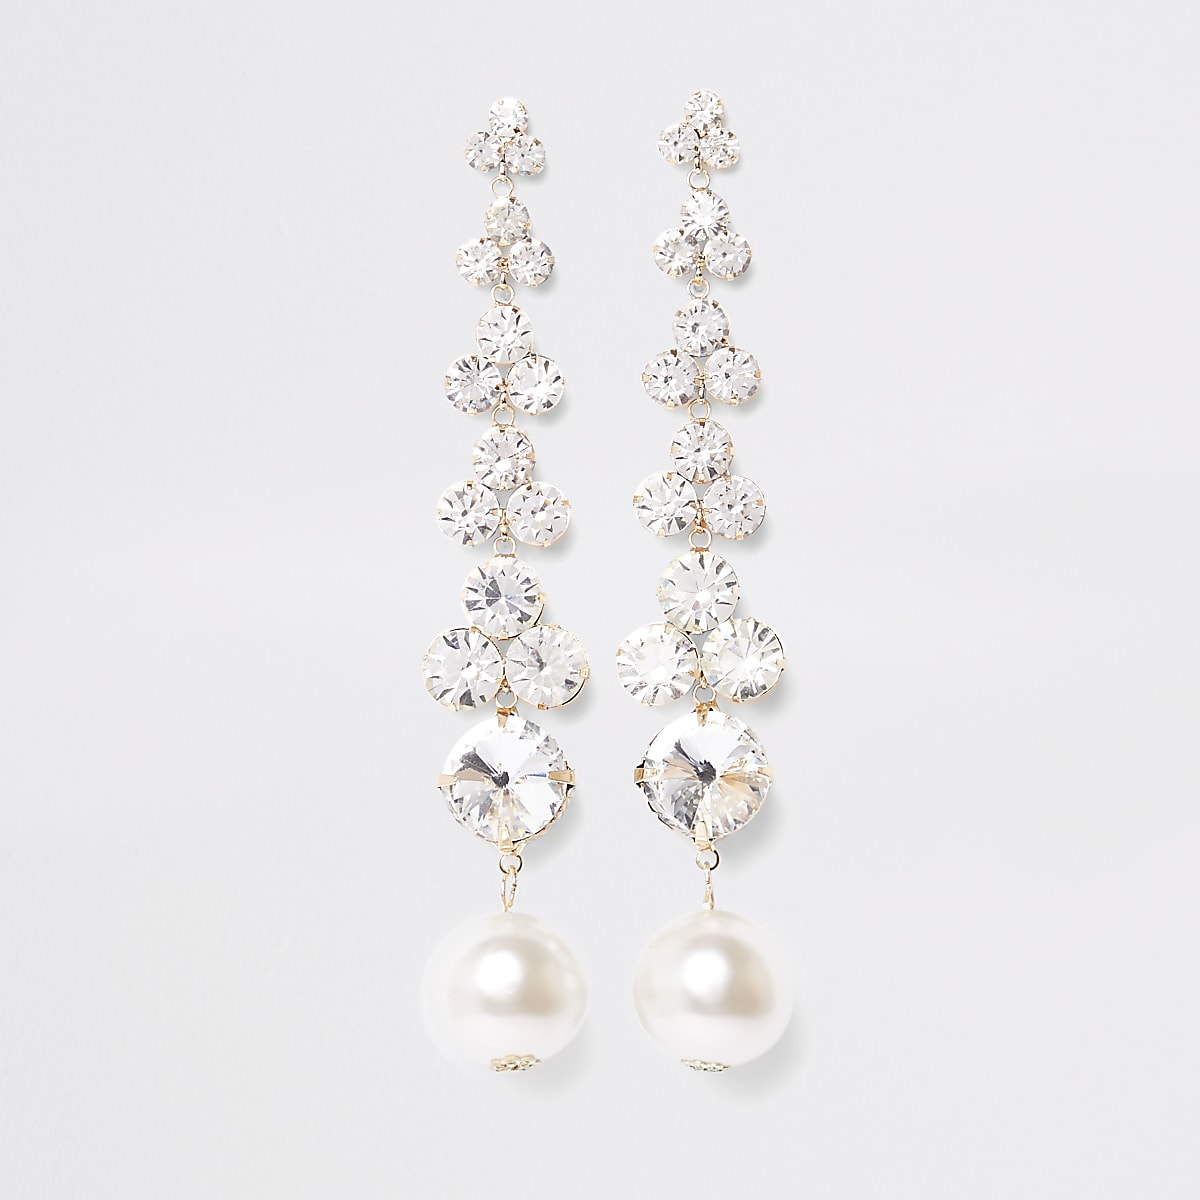 Gold tone diamante pearl drop earrings